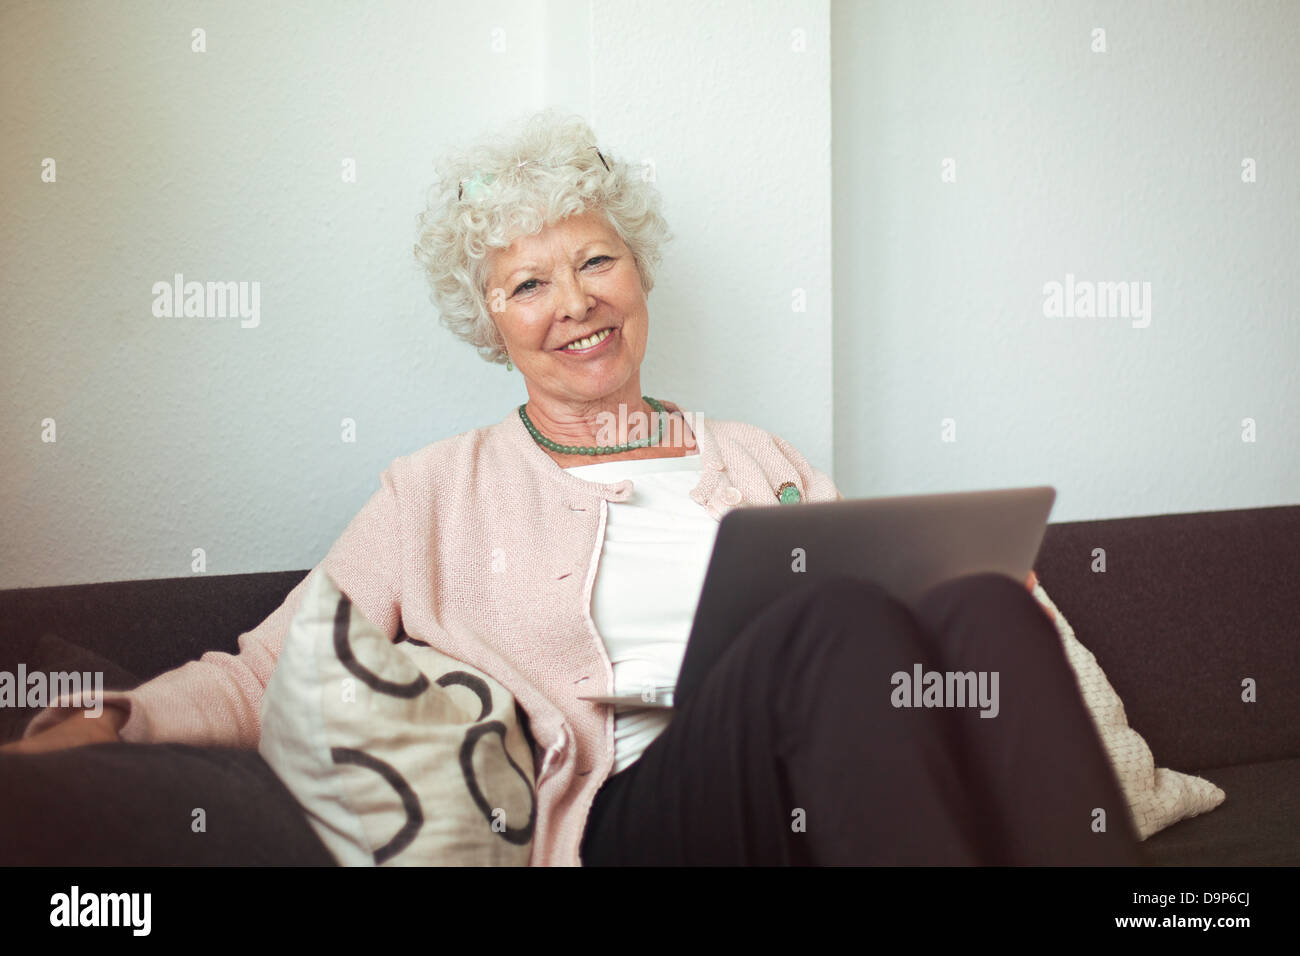 Happy senior woman sitting on the couch at home with laptop - Stock Image